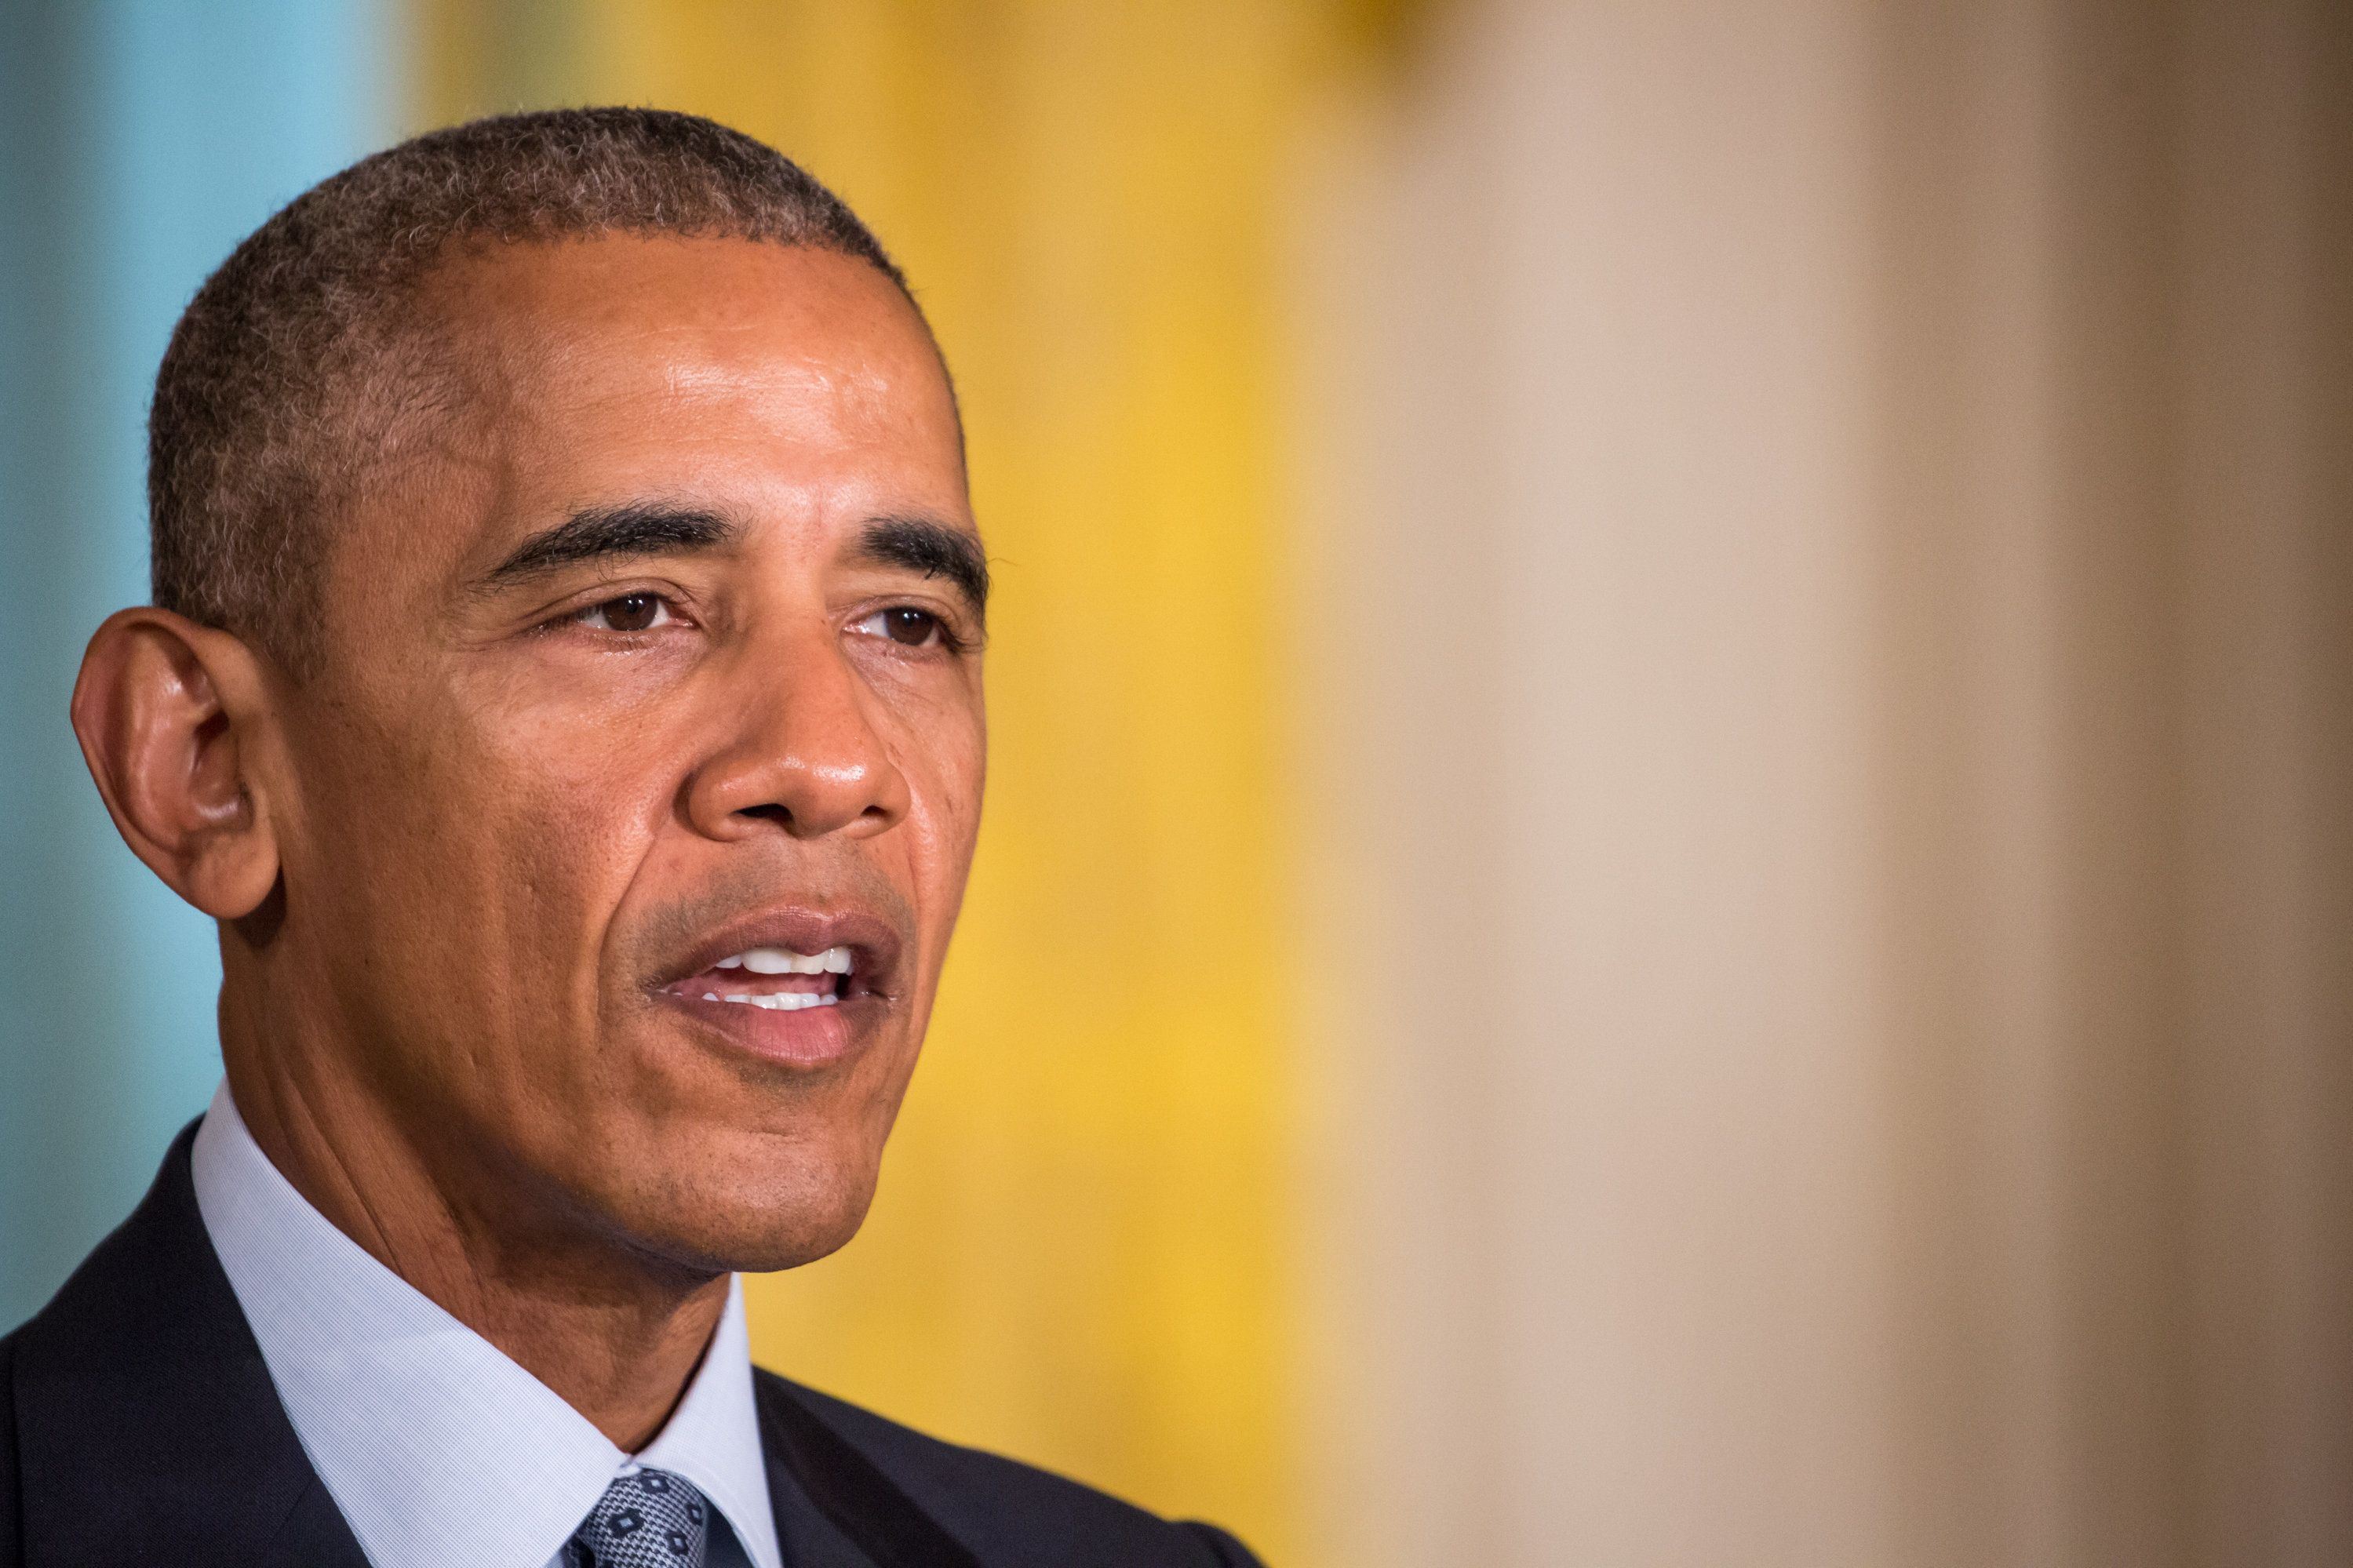 President Barack Obama has called for the U.S. and other nations to do more to help refugees.